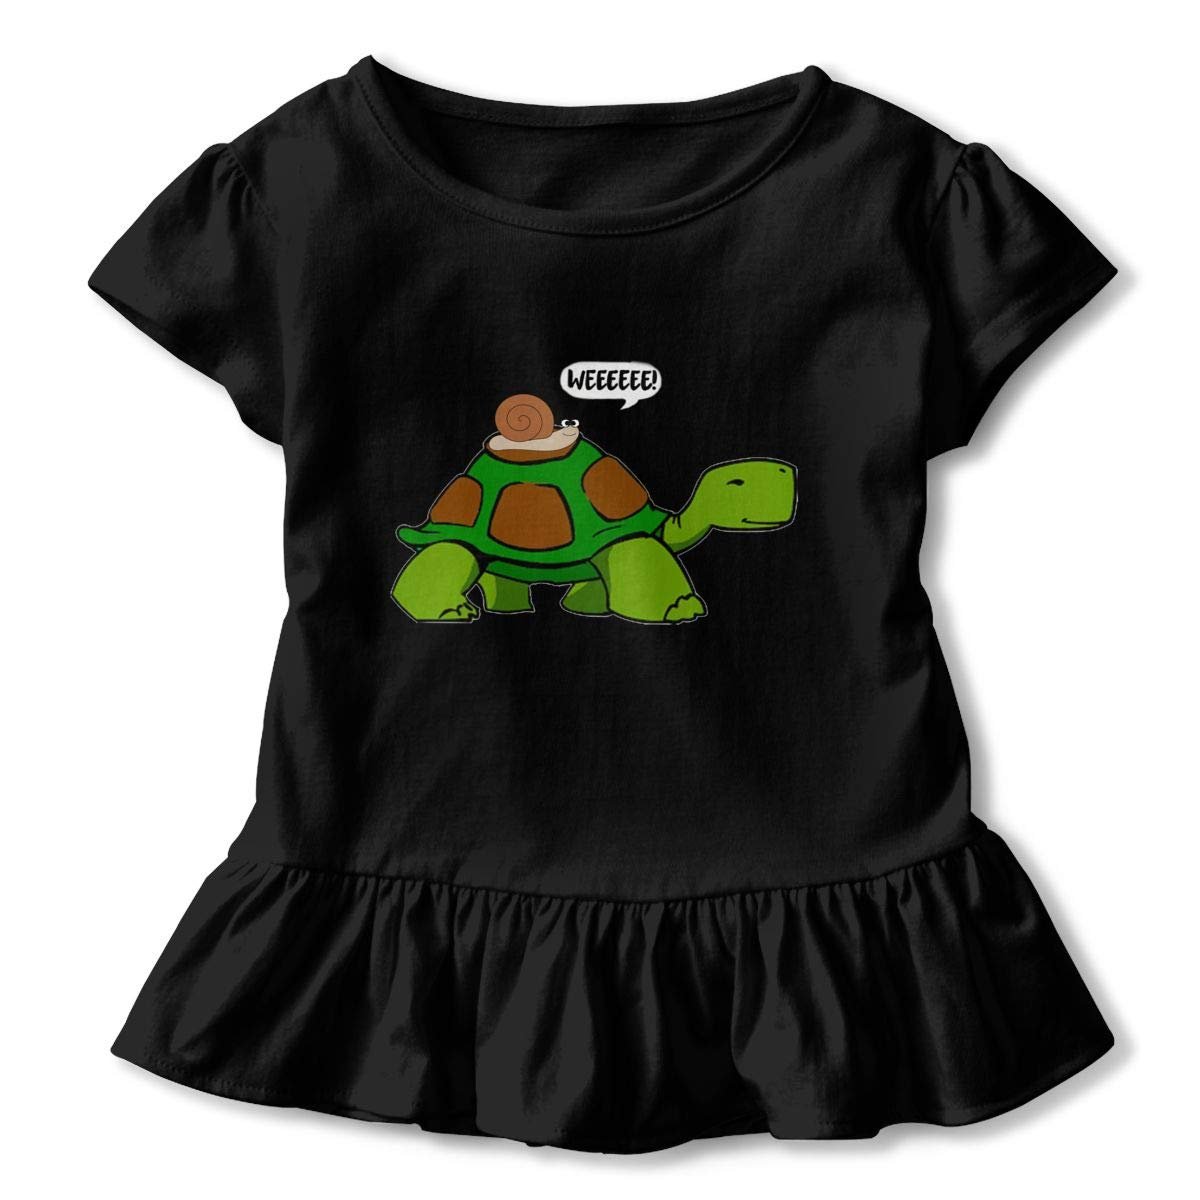 Funny Snail Slow Turtle Ride Weeee Toddler Baby Girls Short Sleeve Ruffle T-Shirt